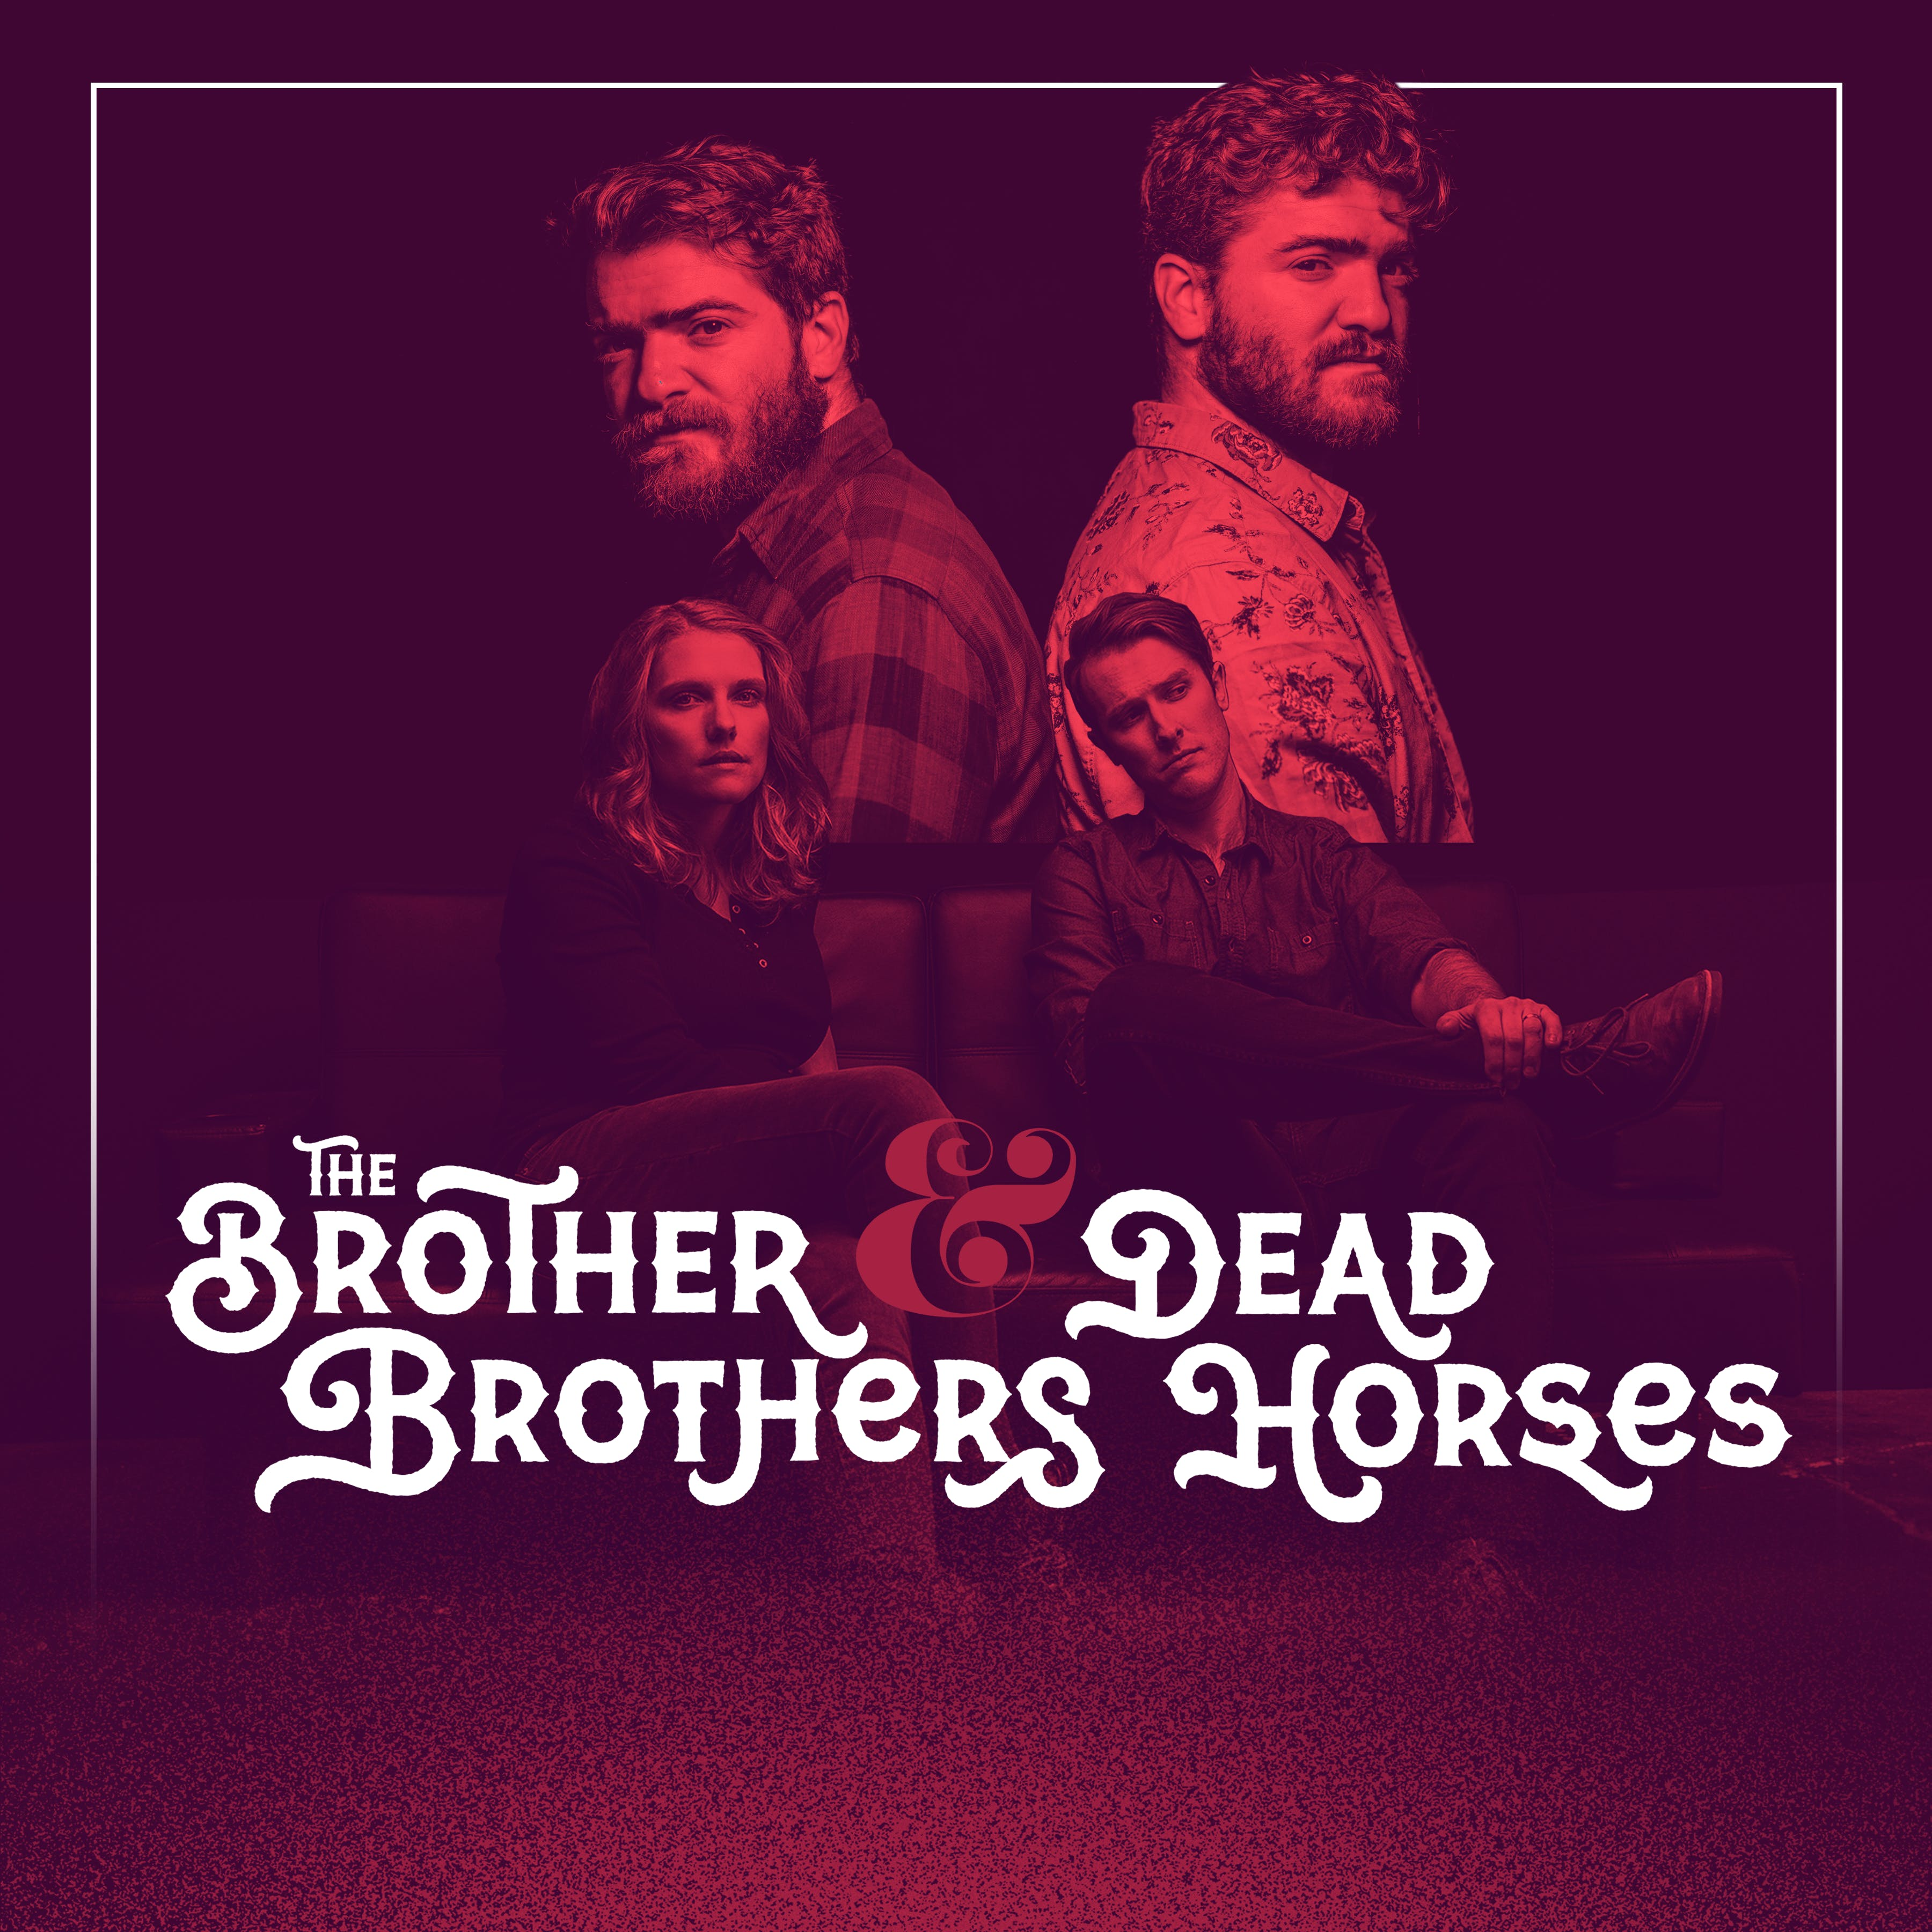 The Brother Brothers and Dead Horses